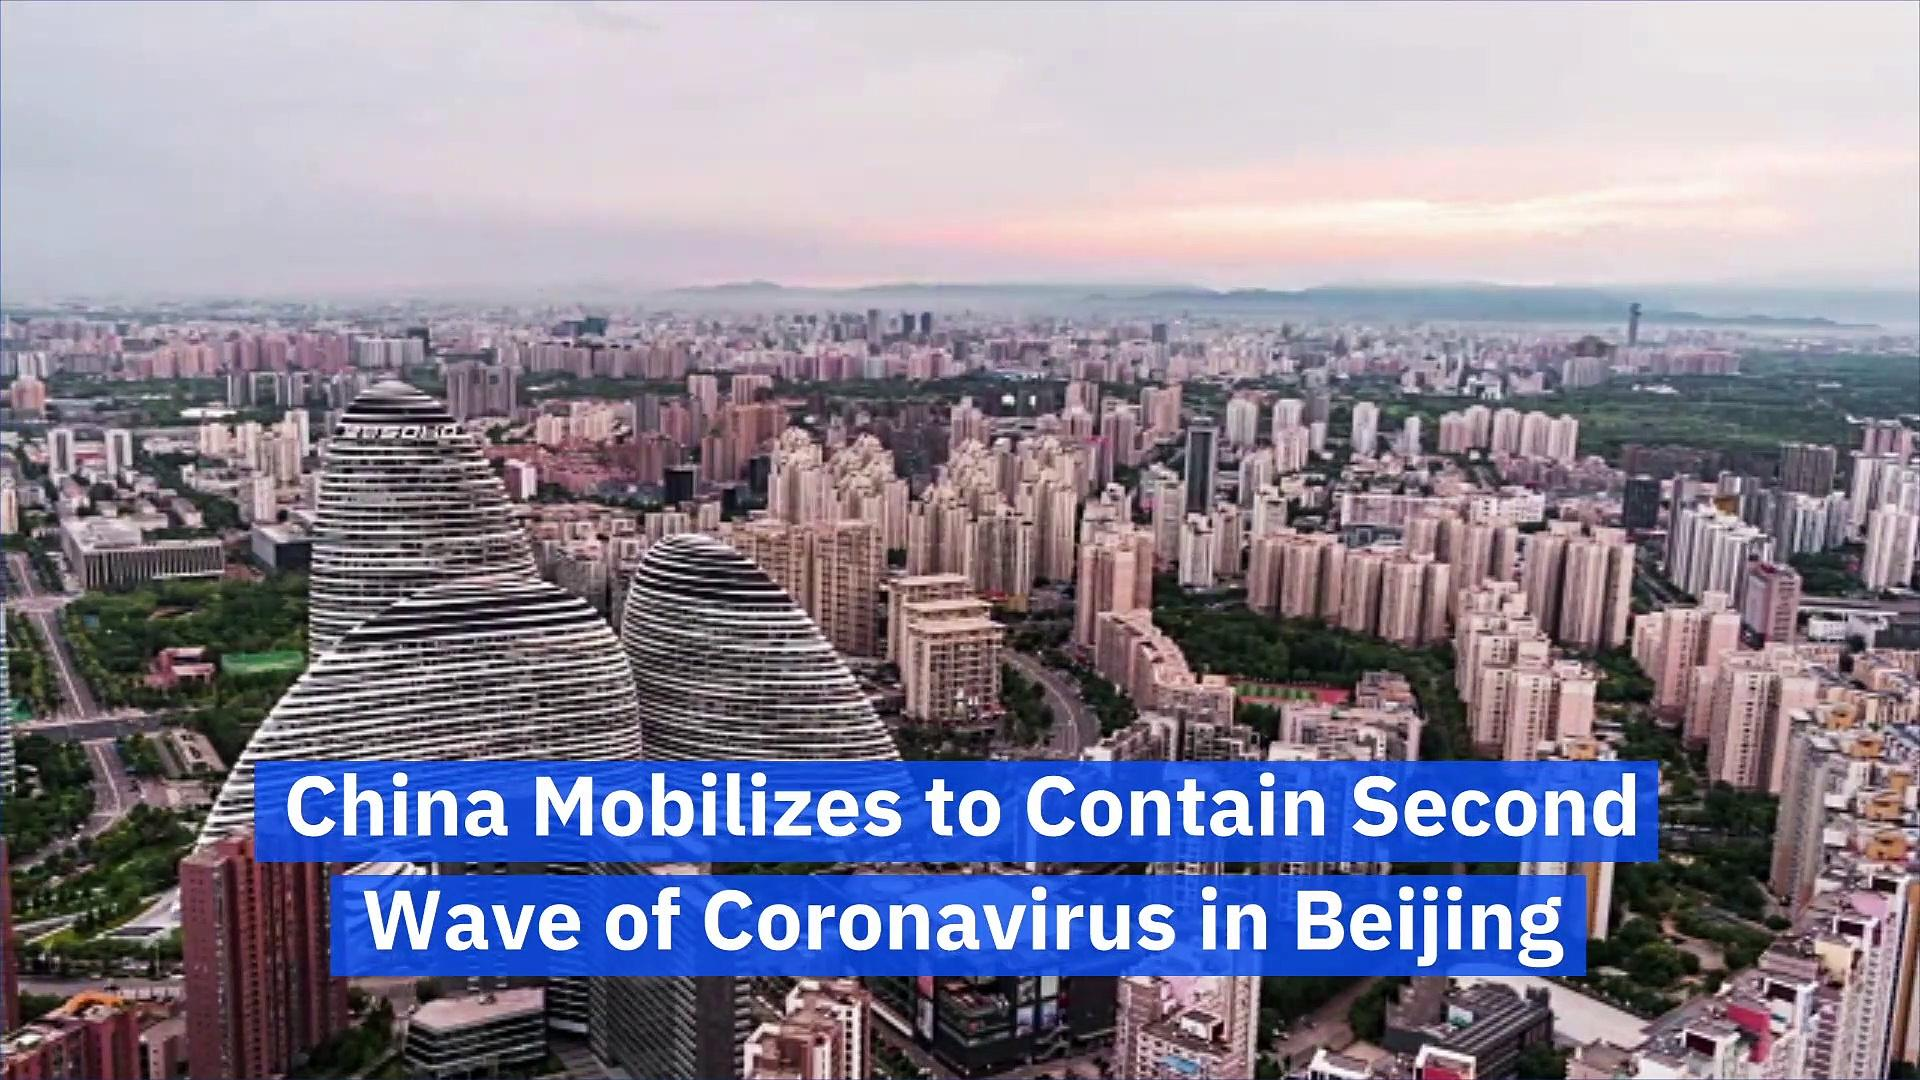 China Mobilizes to Contain Second Wave of Coronavirus in Beijing